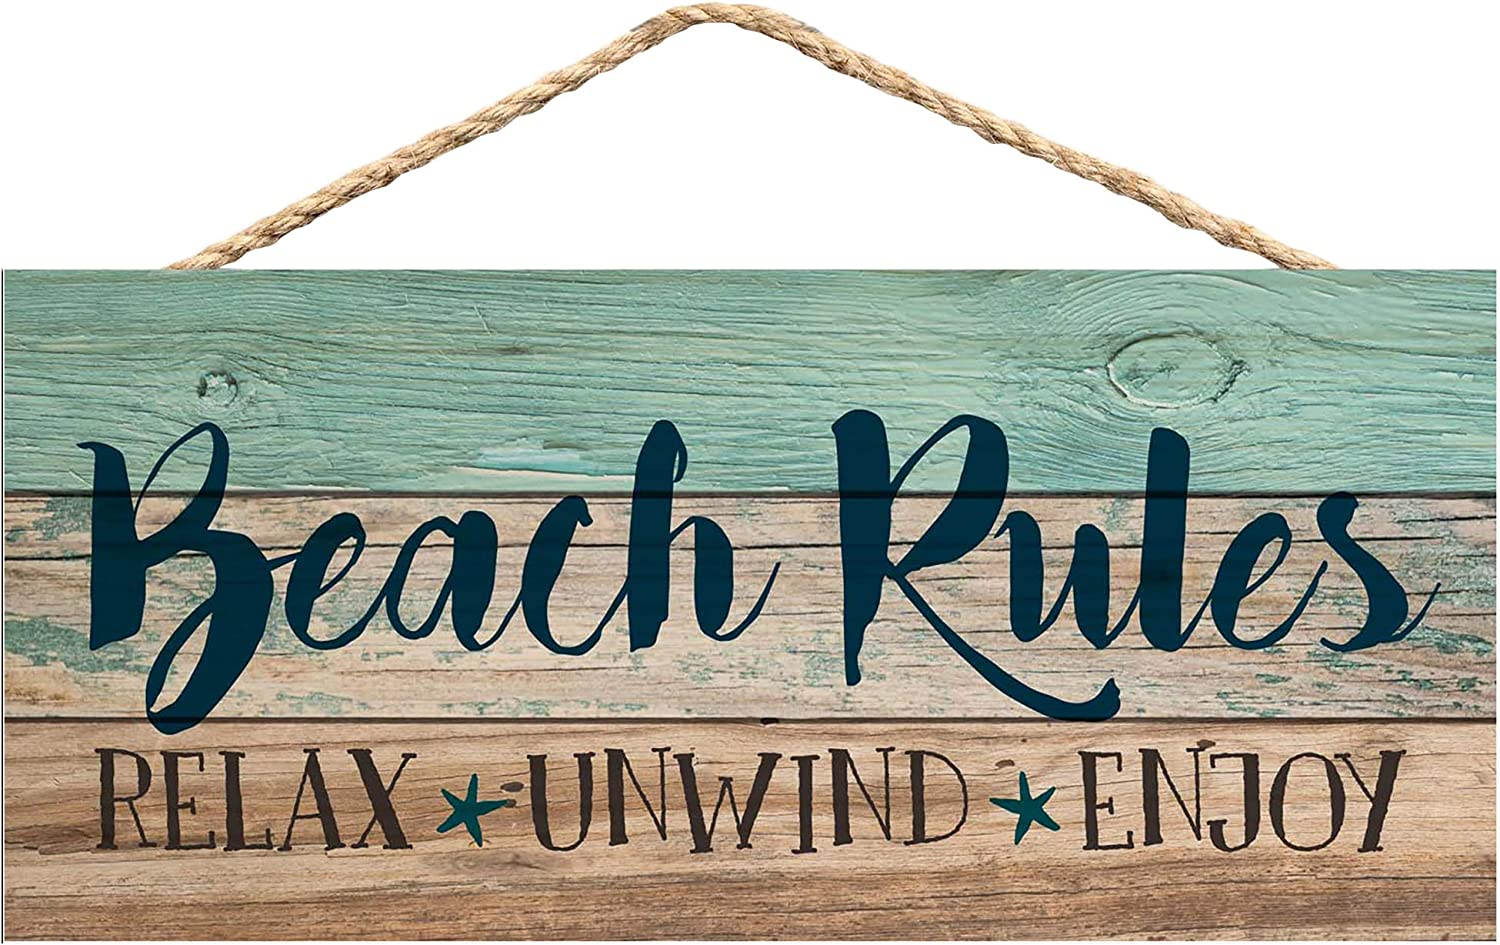 Summer Rules Classic White 10 x 4 Pine Wood Decorative Hanging String Sign